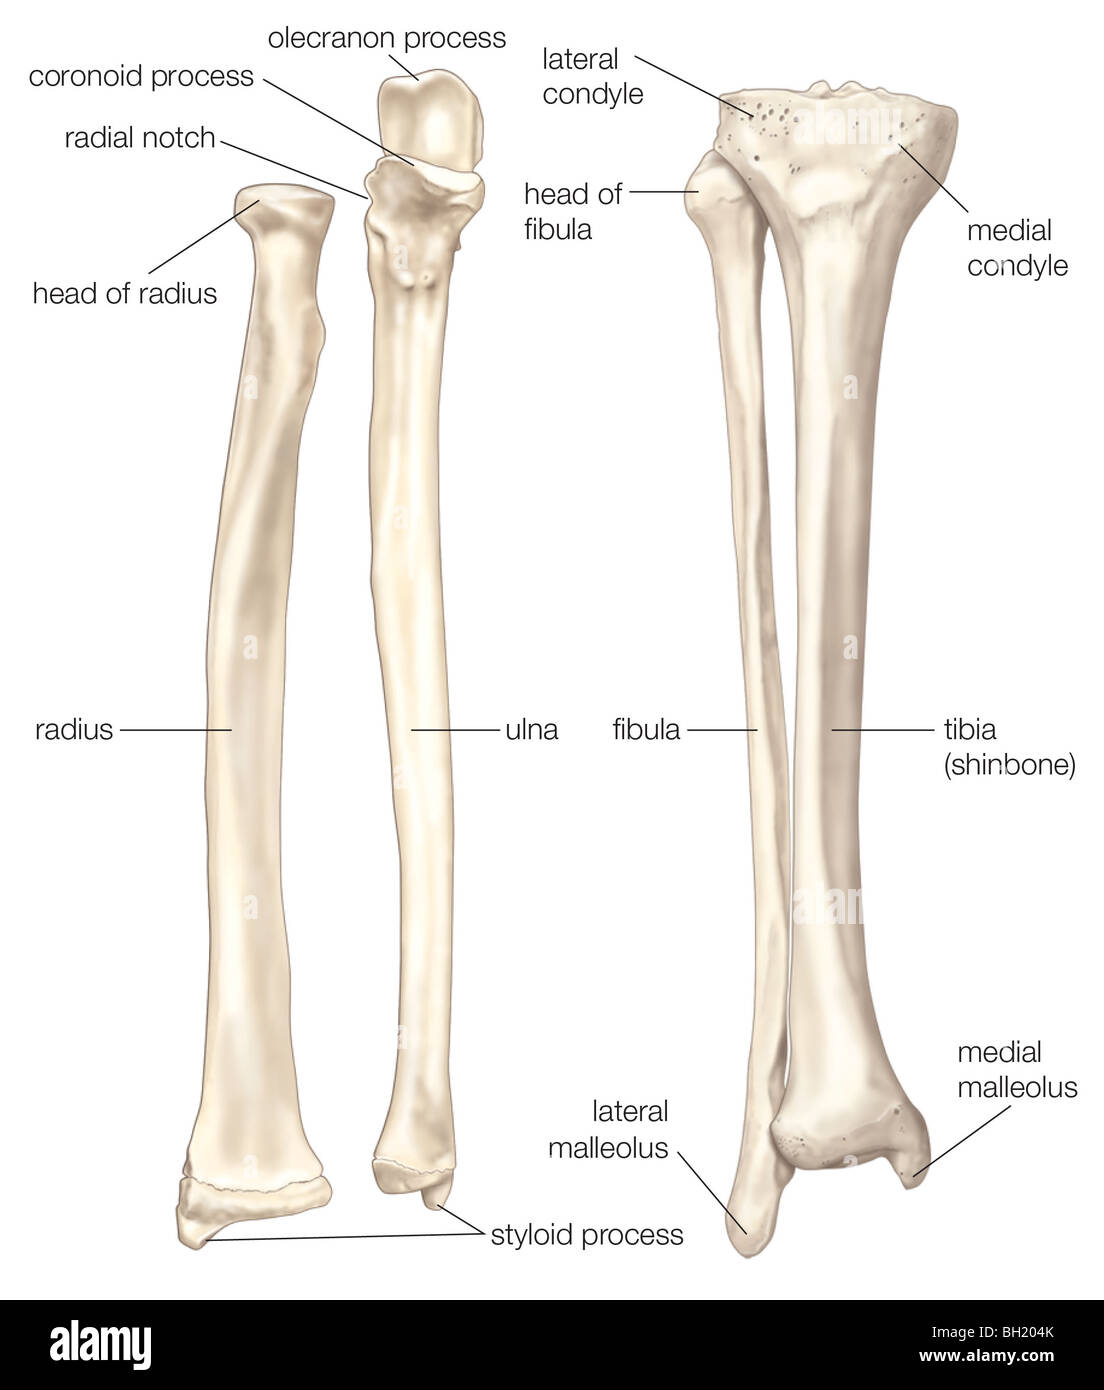 bones of the forearm and lower leg stock photo, royalty free image, Cephalic Vein